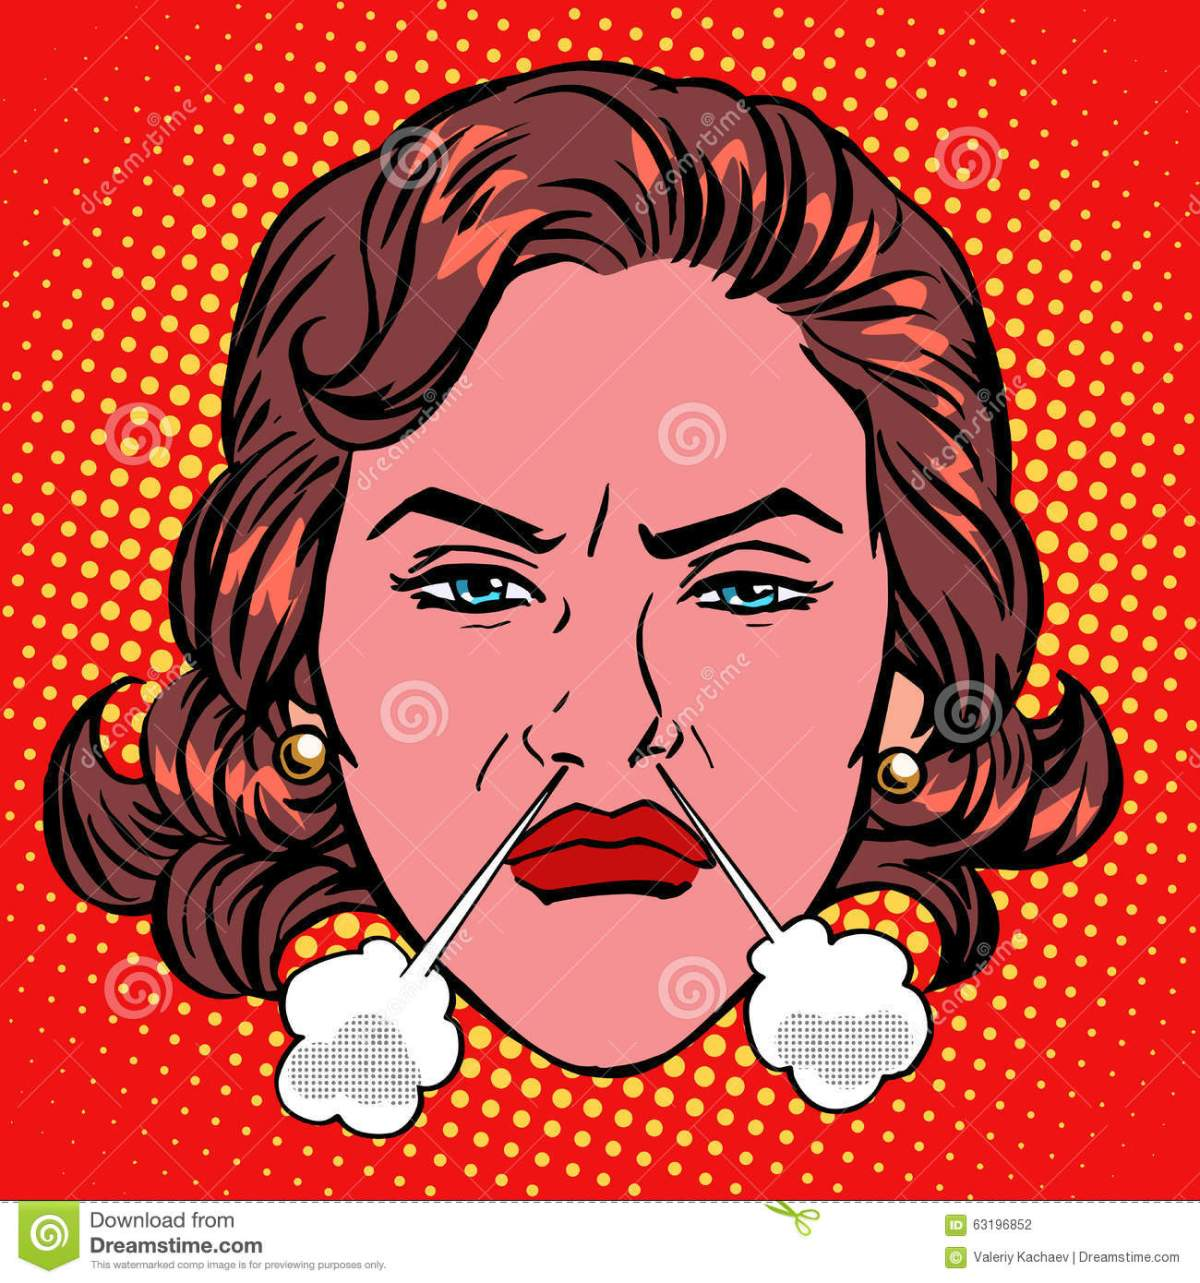 retro-emoji-rage-anger-boiling-woman-face-pop-art-style-63196852